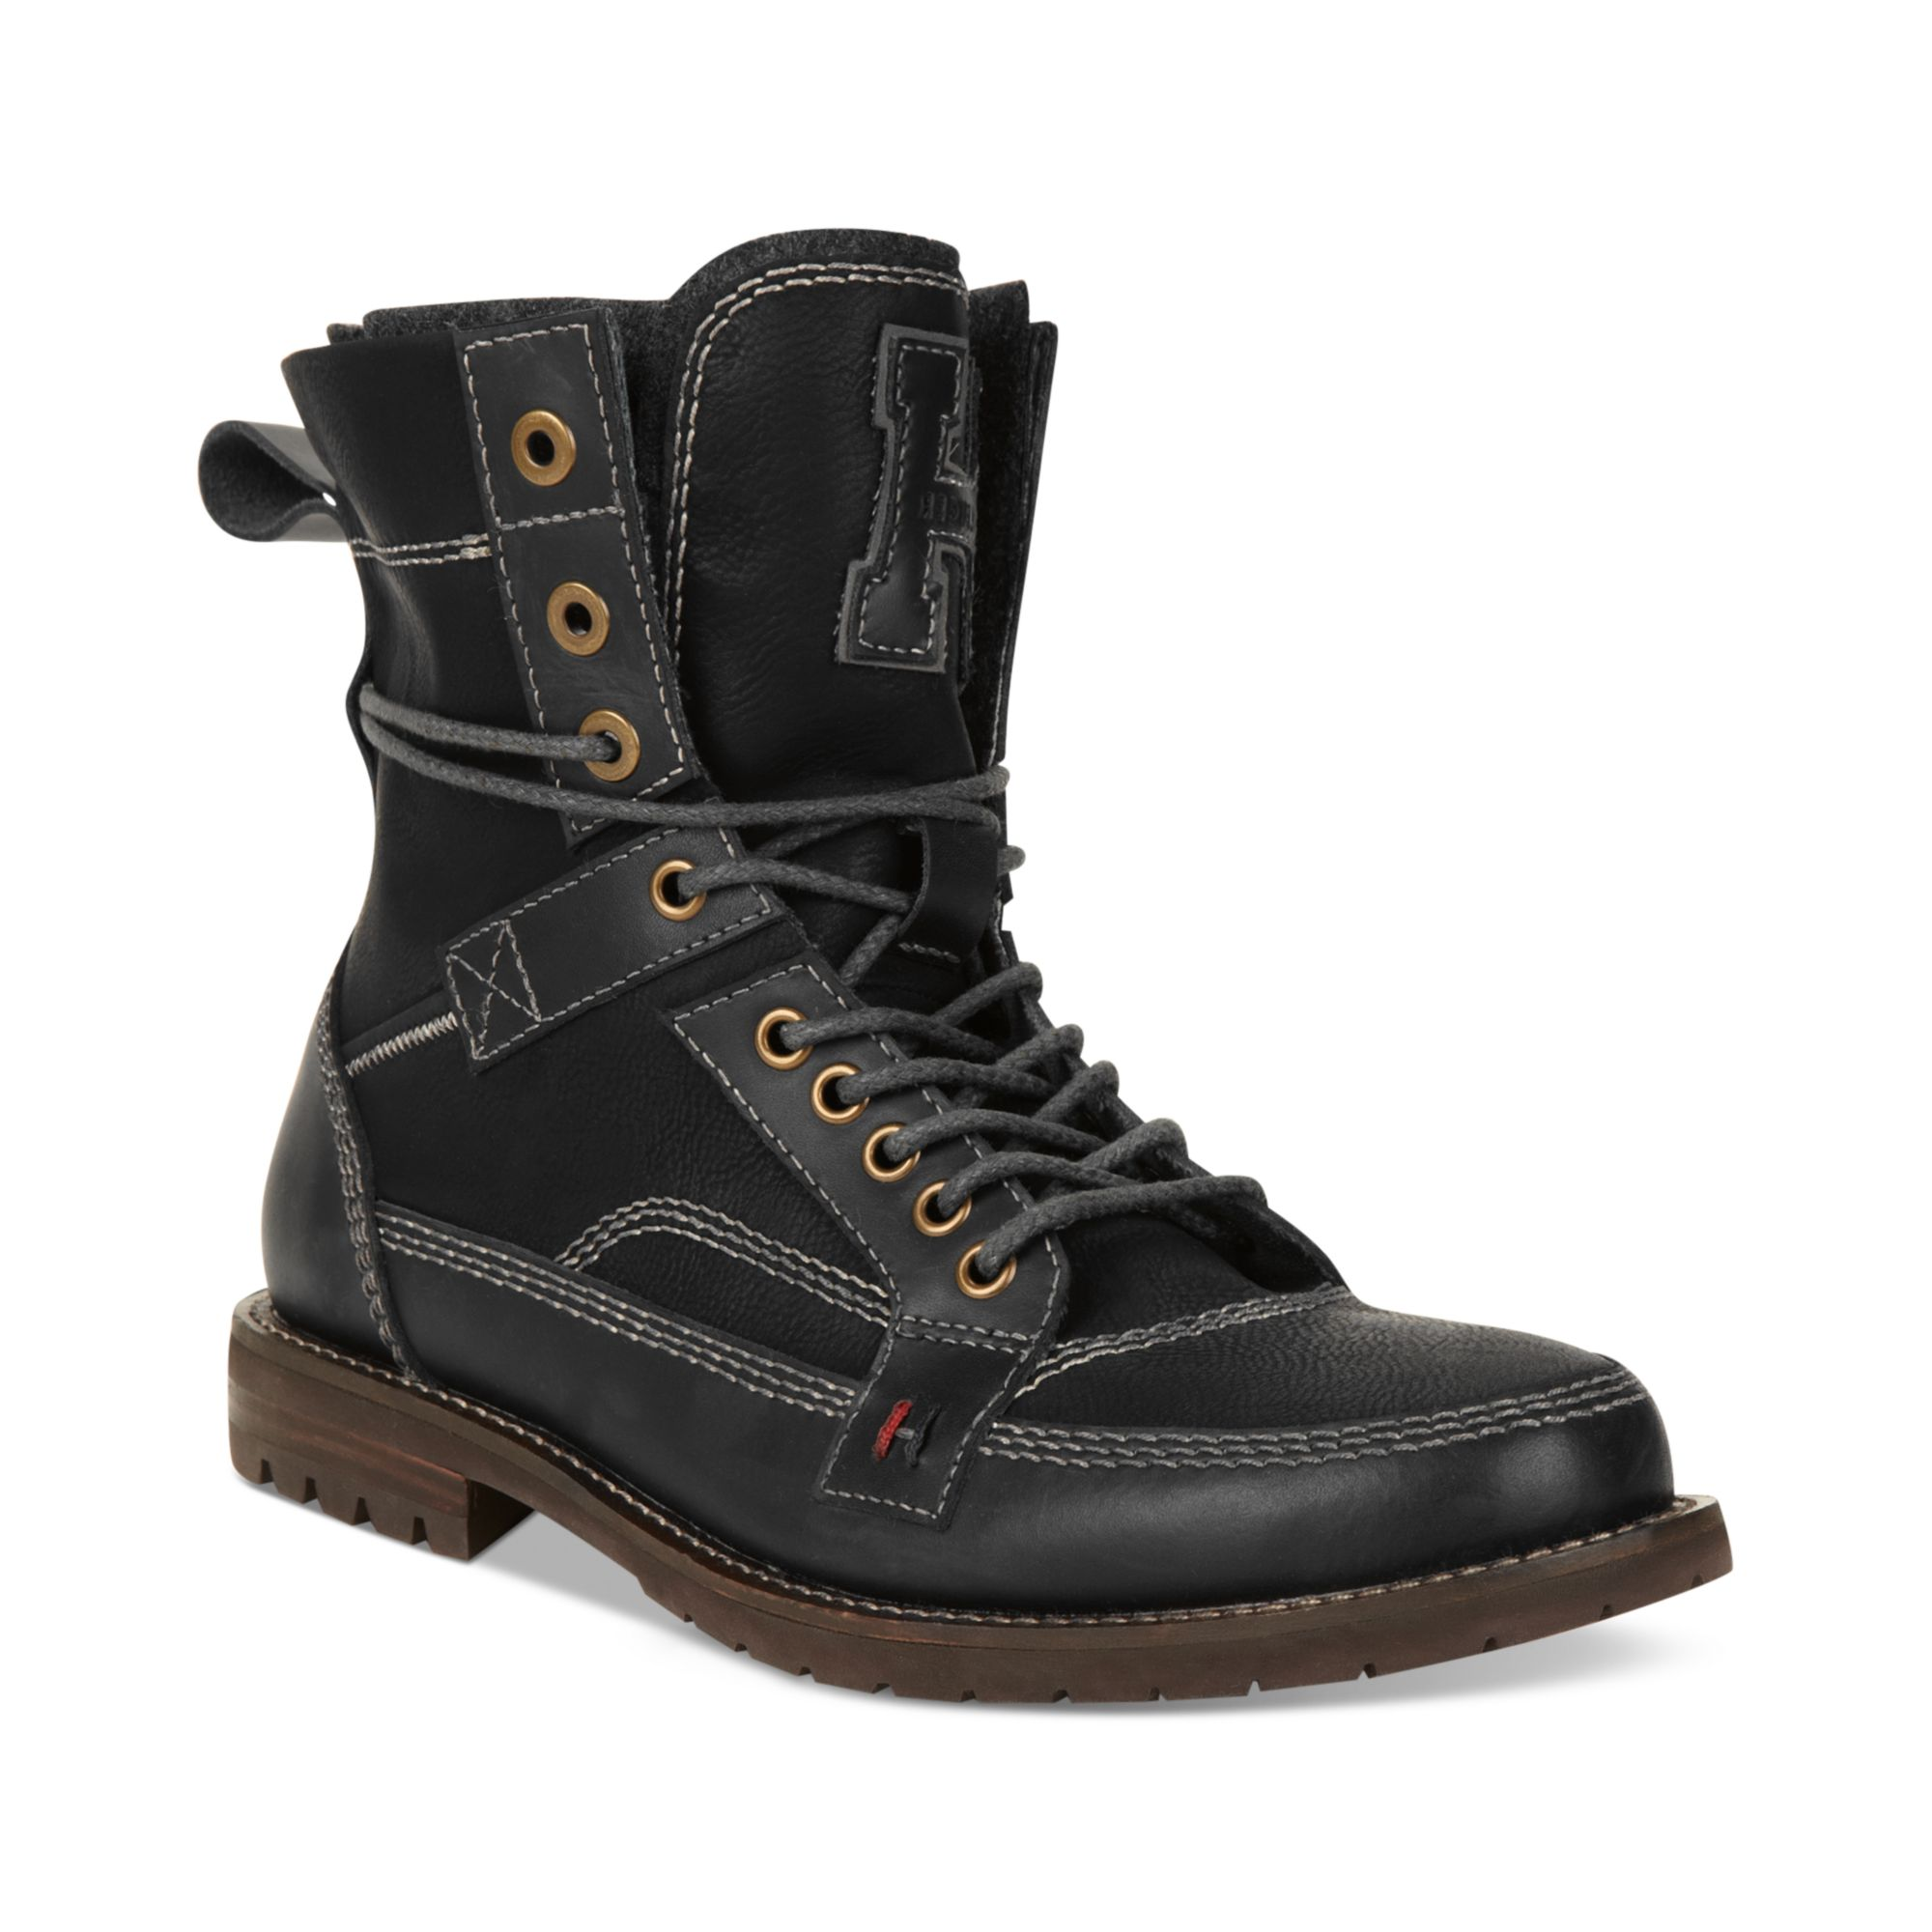 lyst tommy hilfiger brutus boots in black for men. Black Bedroom Furniture Sets. Home Design Ideas